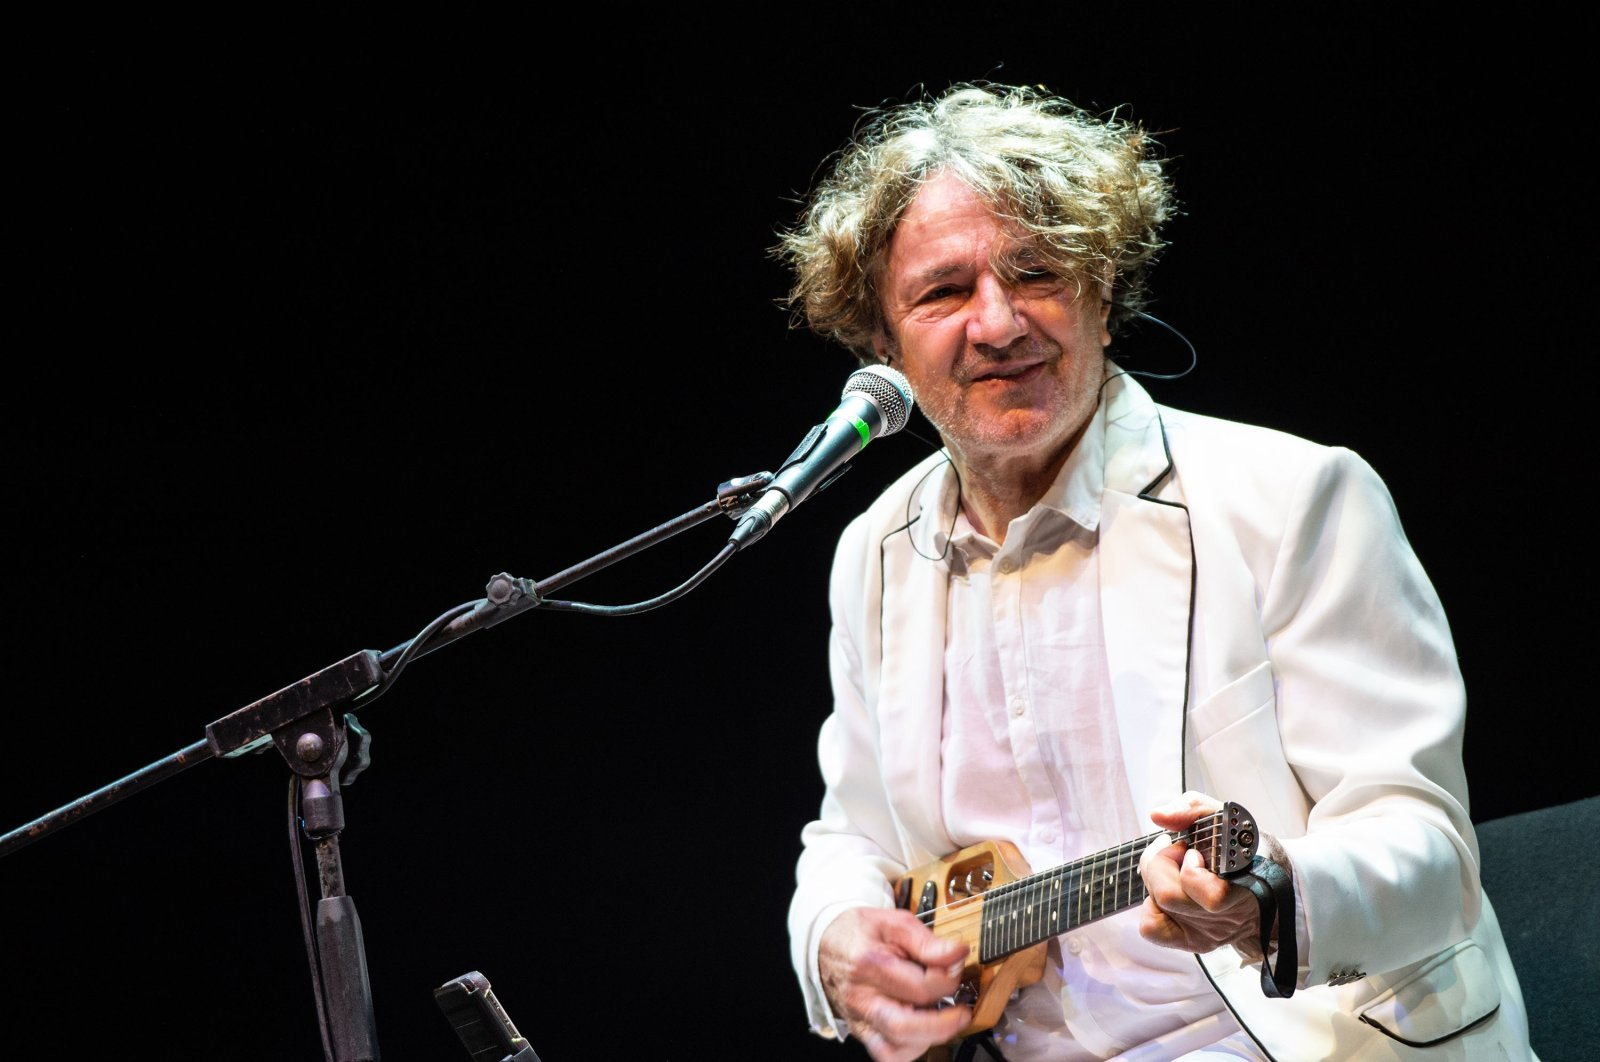 Goran Bregovic and The Wedding & Funeral Band perform at the Polla Folk Fest, Polla, Italy, June 16, 2019. (Getty Images)